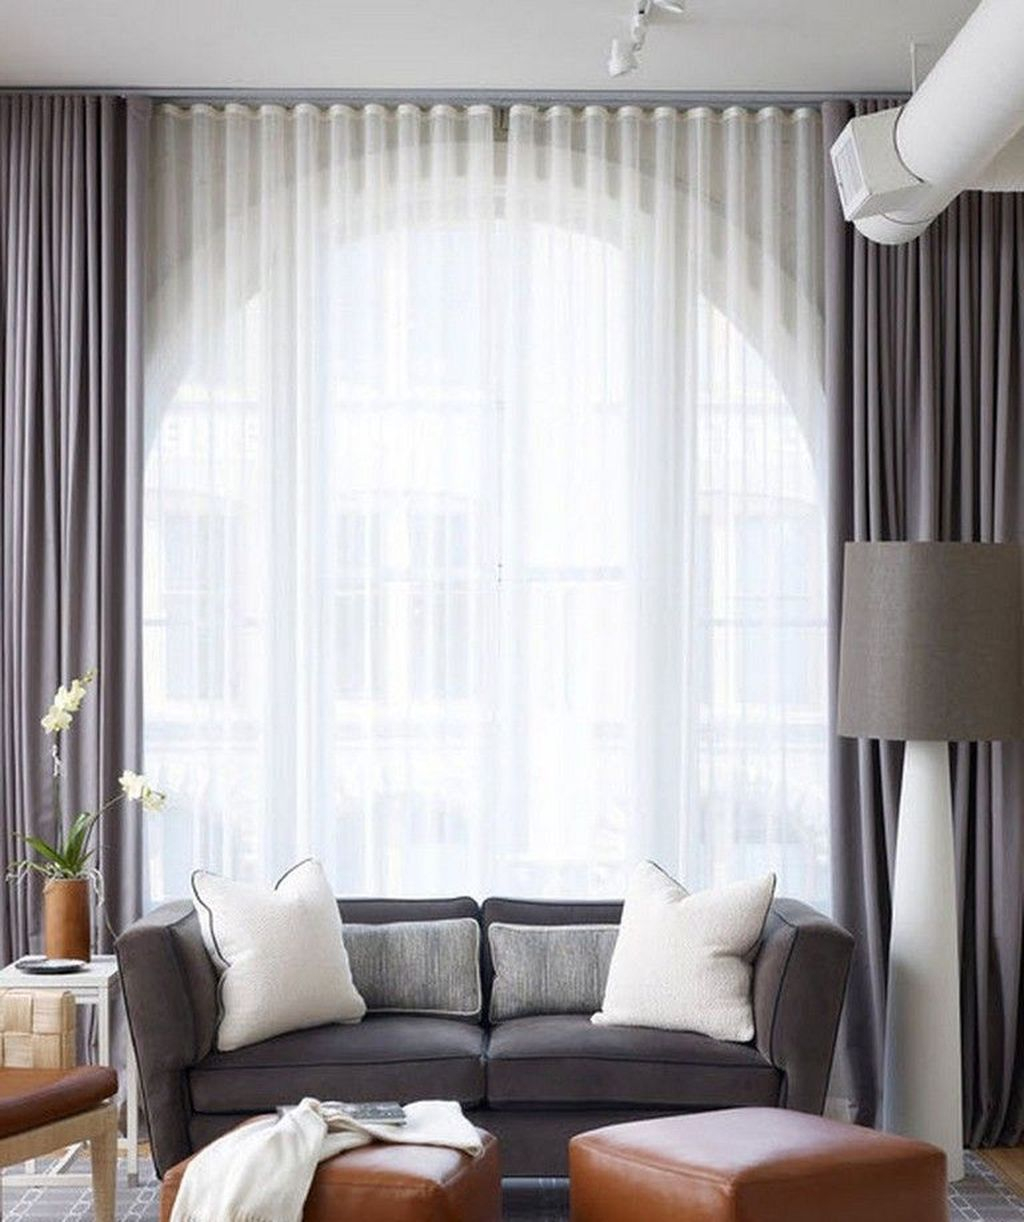 Inexpensive Living Room Curtain Design Ideas On A Budget 24